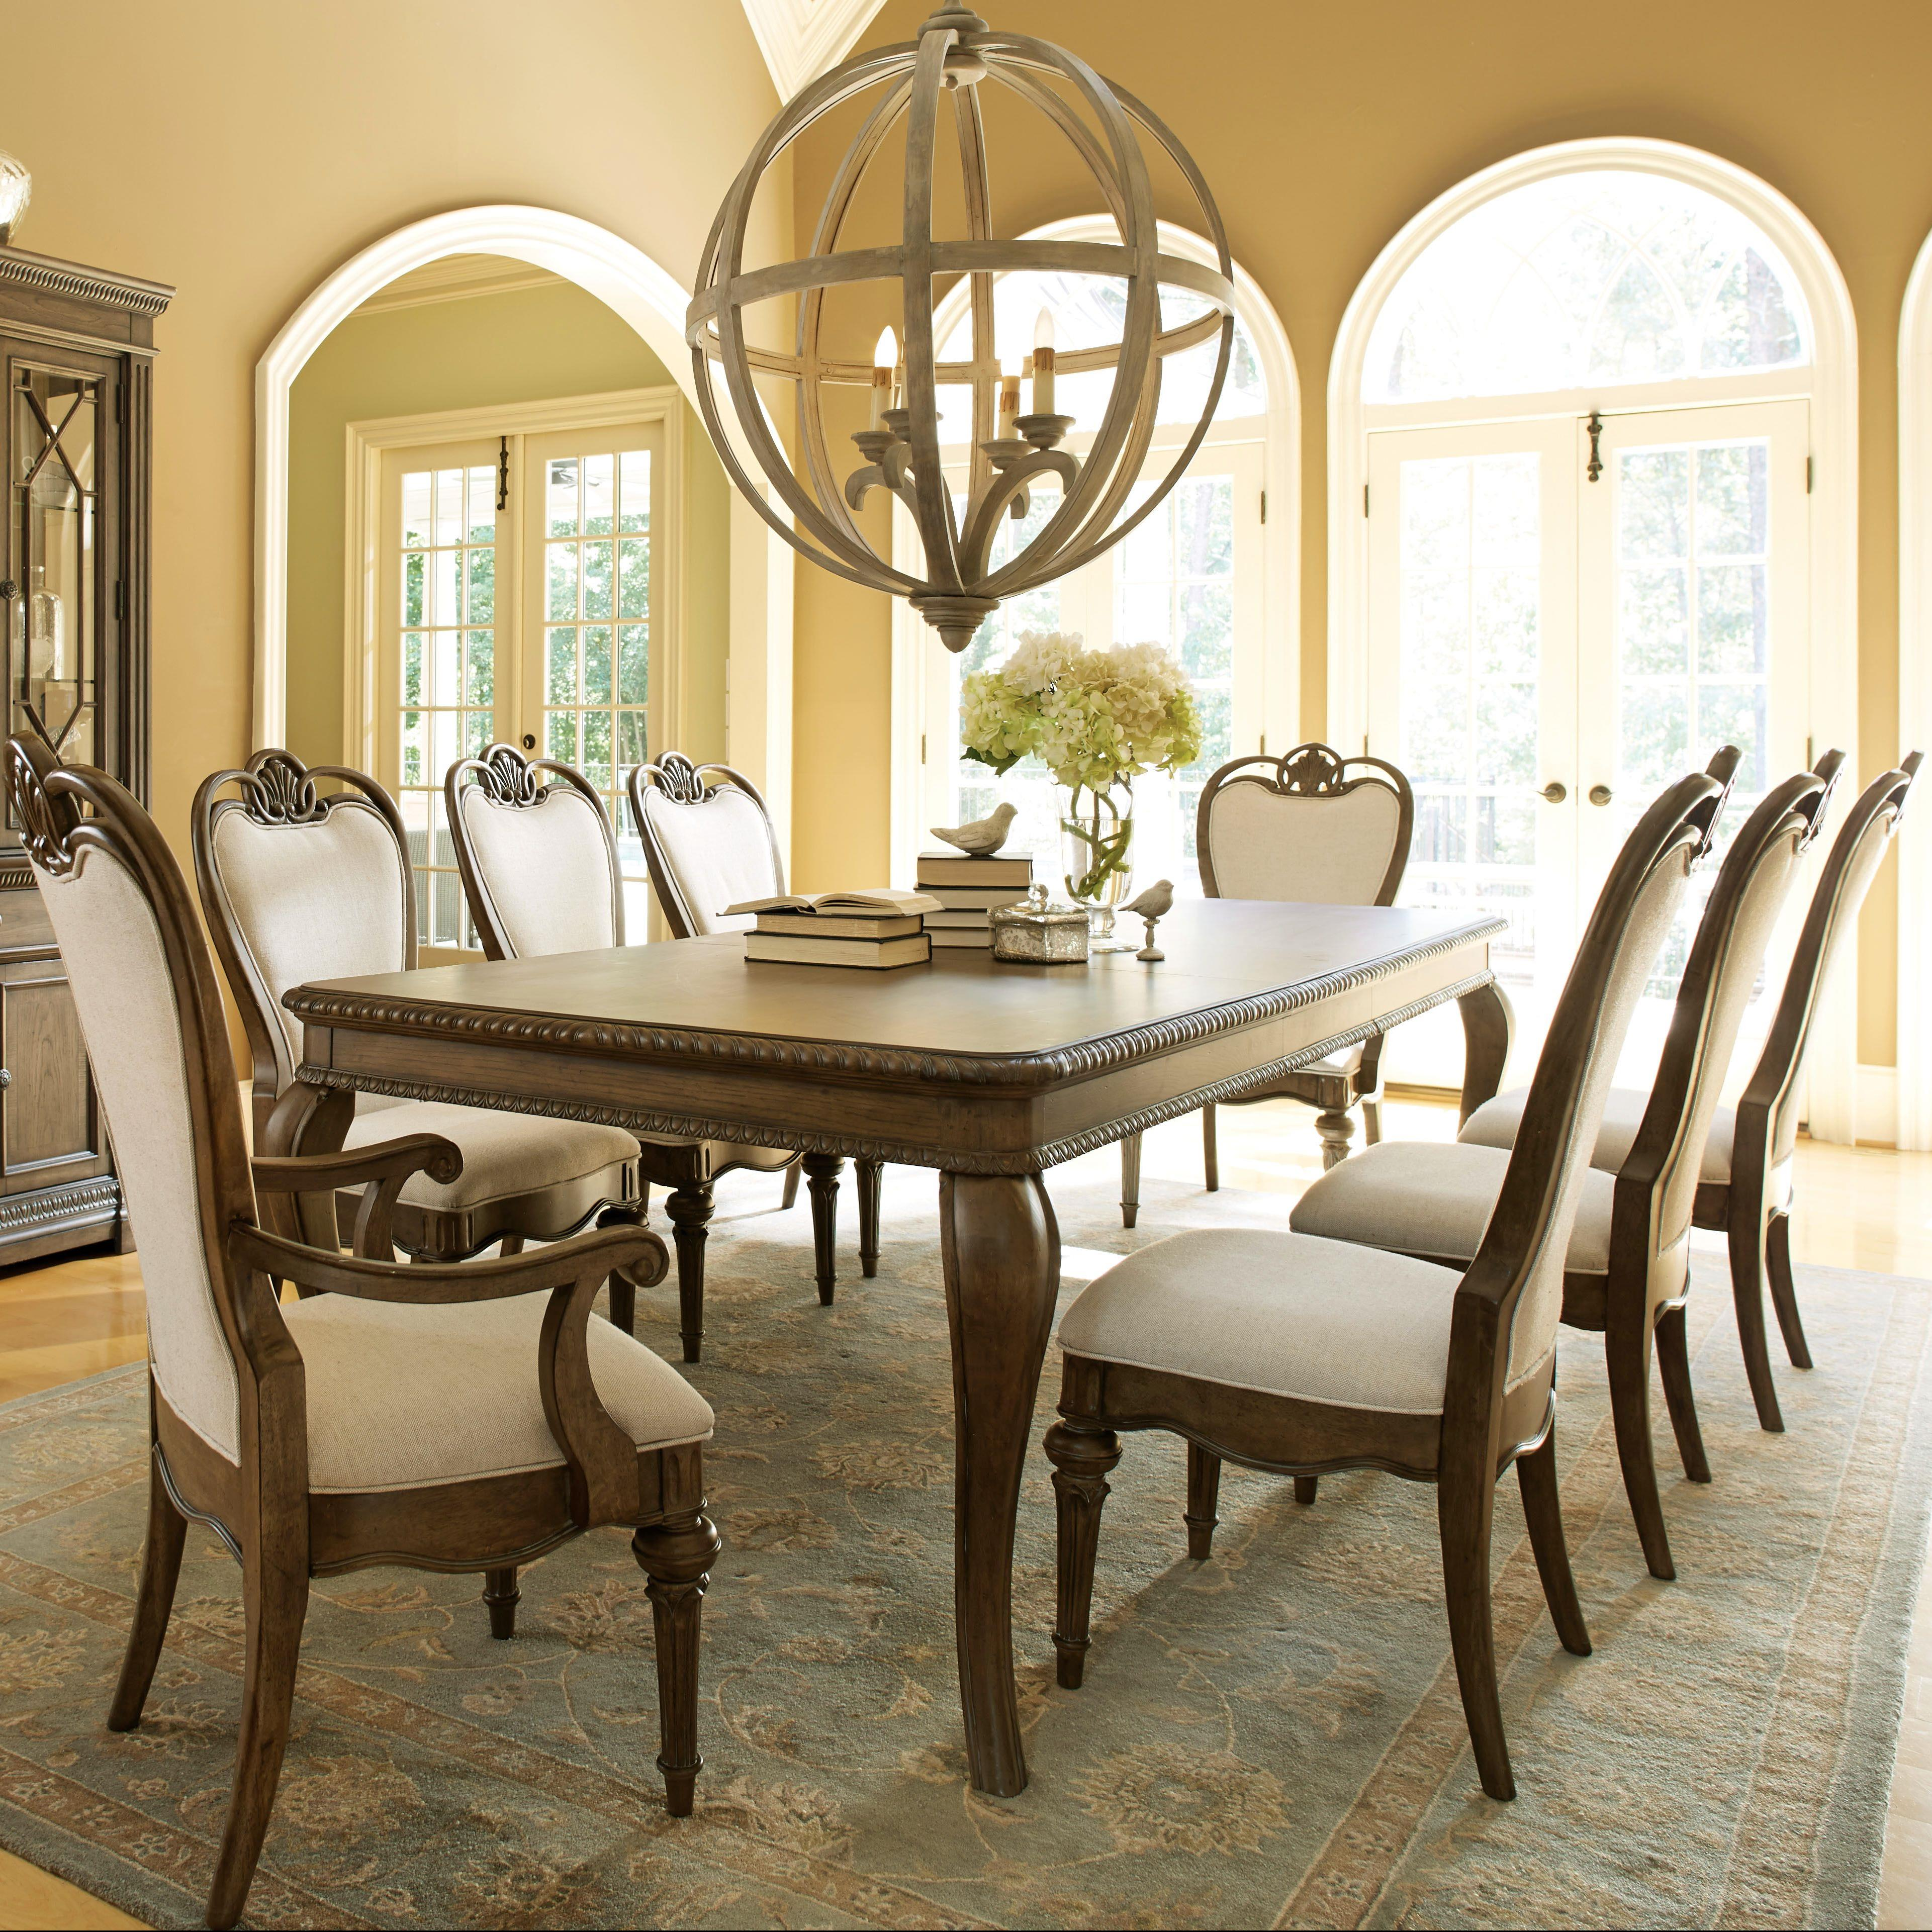 Legacy Classic Renaissance 9 Piece Table and Chair Set - Item Number: 5500-221+2x241 KD+6x240 KD